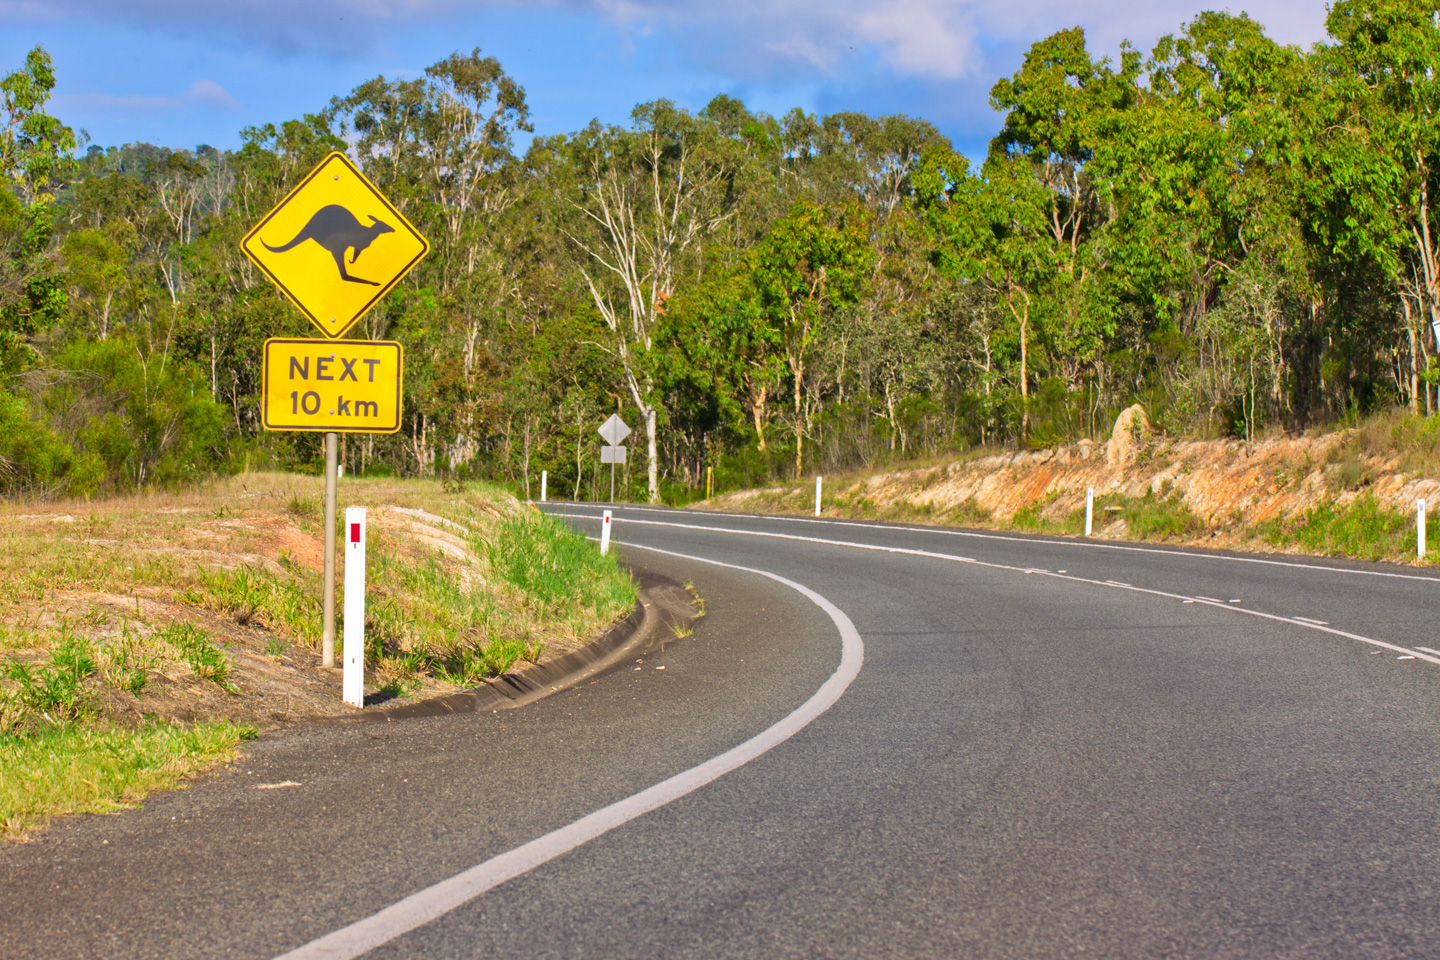 http://Rules%20Of%20The%20Road%20Australia%20Dreamstime%20Xl%2017033960